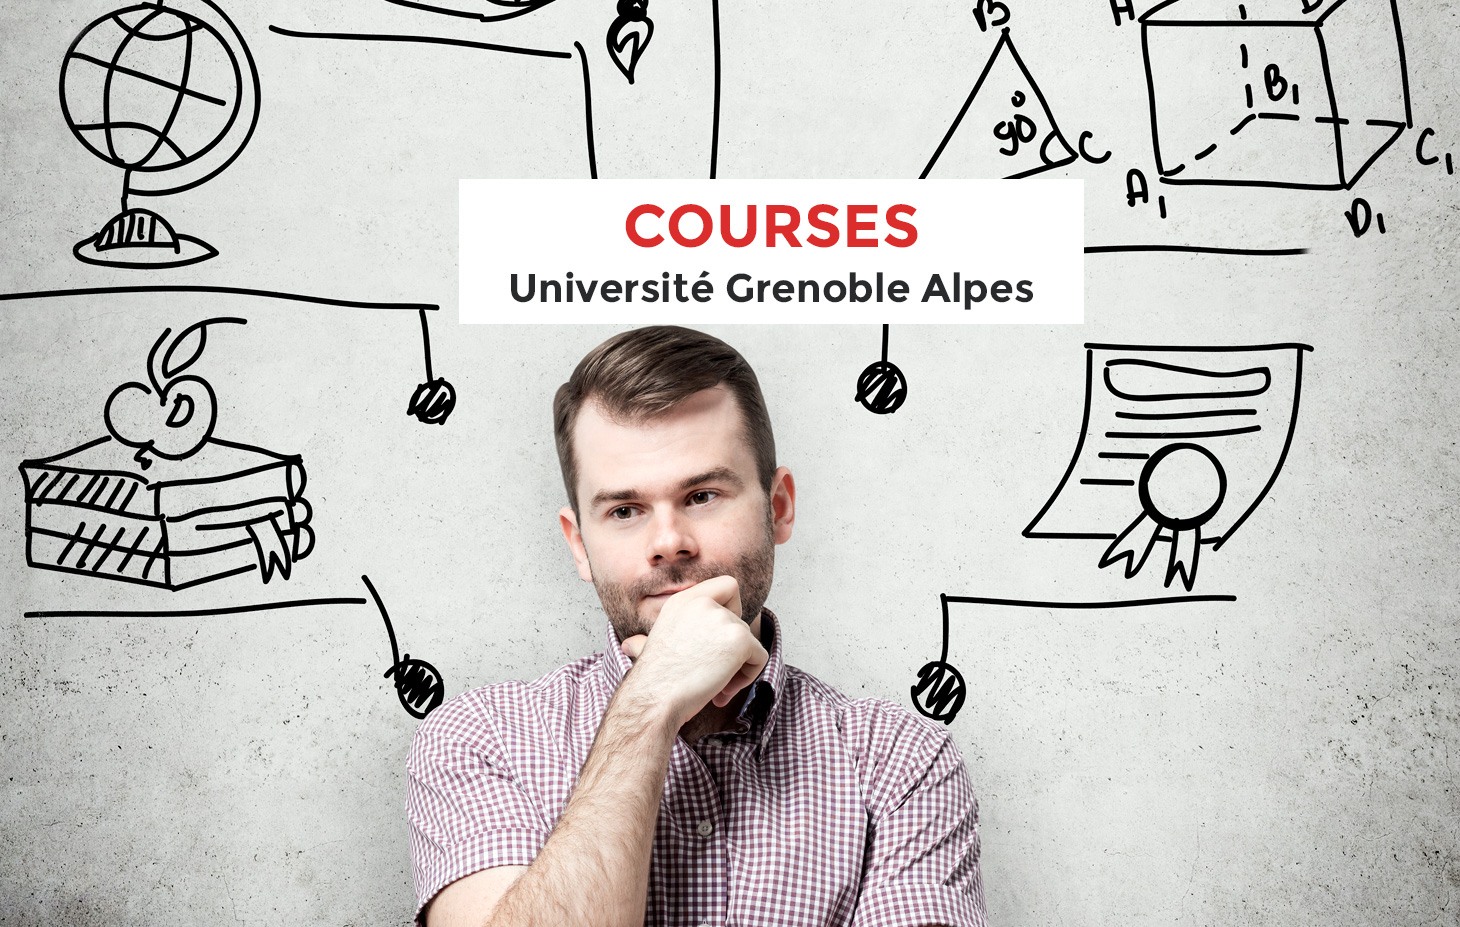 Courses Université Grenoble Alpes